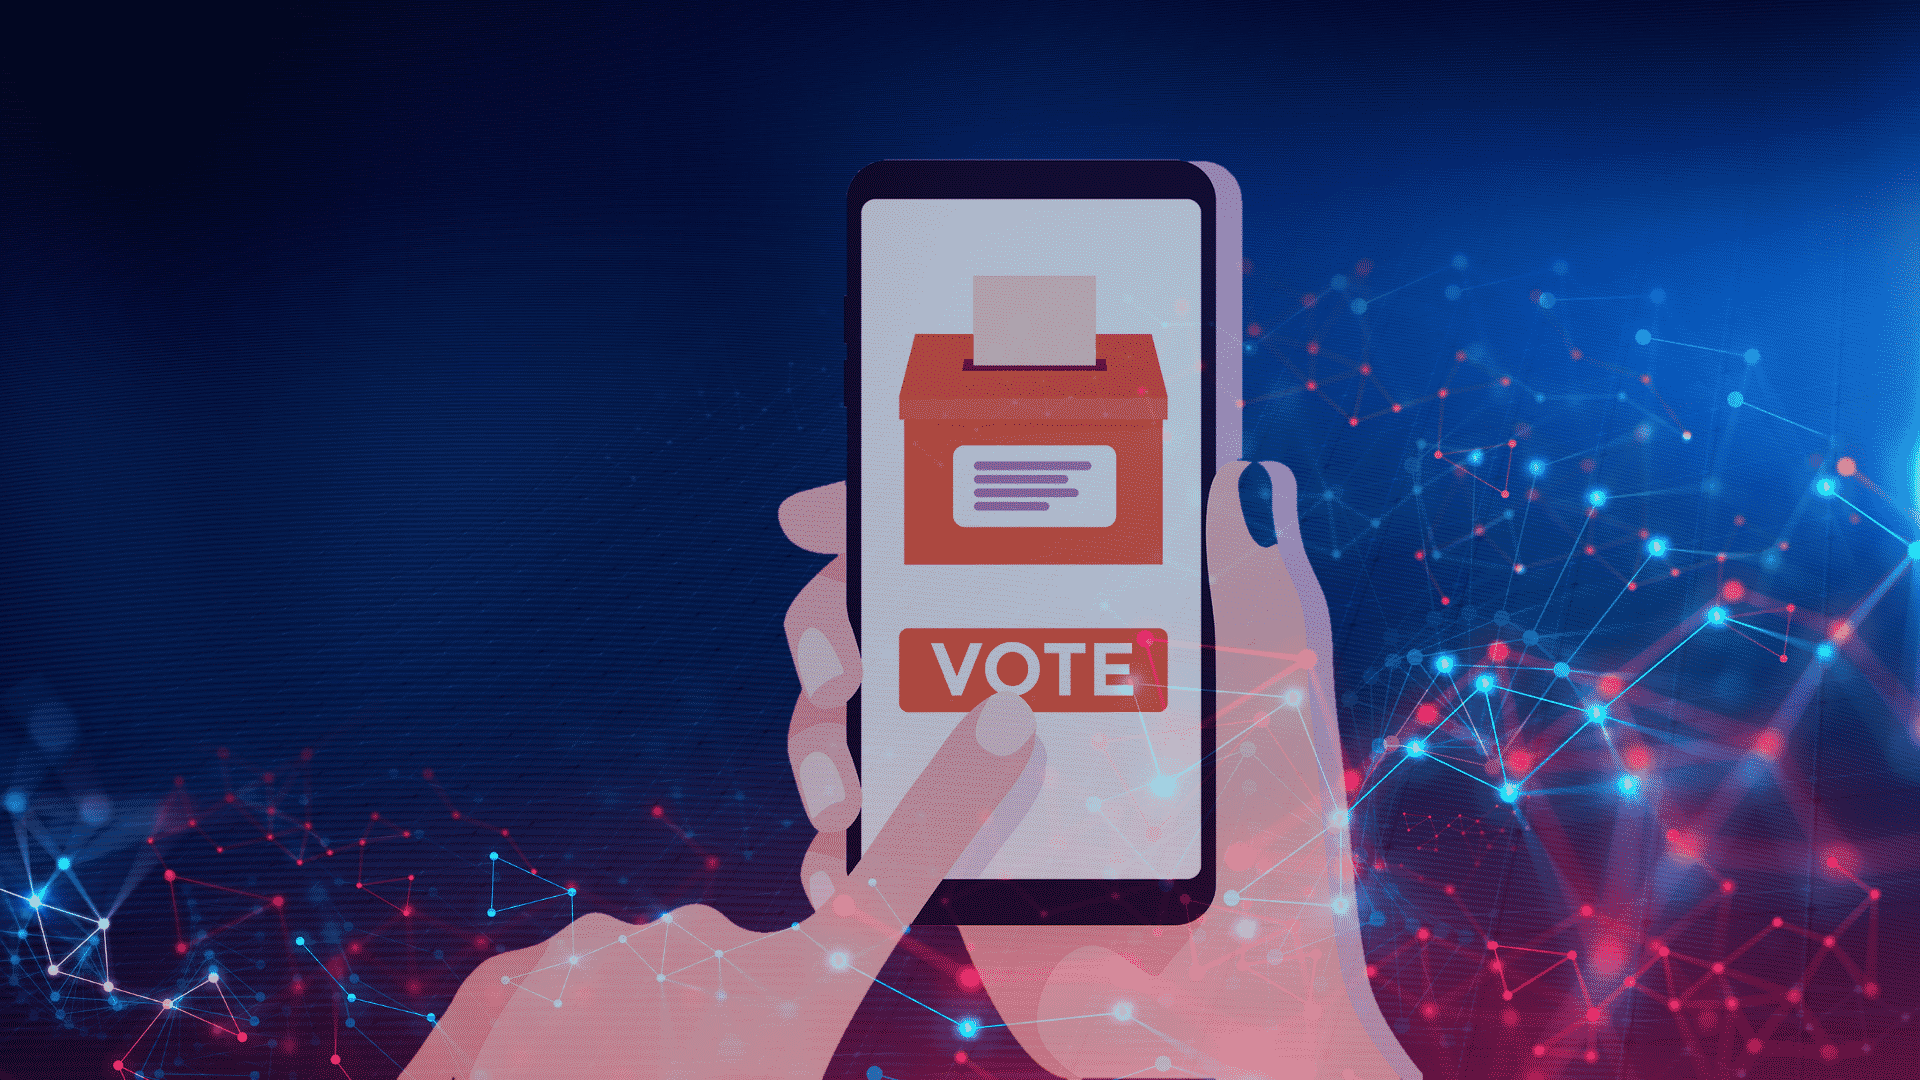 Engineering Students Win First Place in Hexathon for Blockchain-based Online Voting System Project